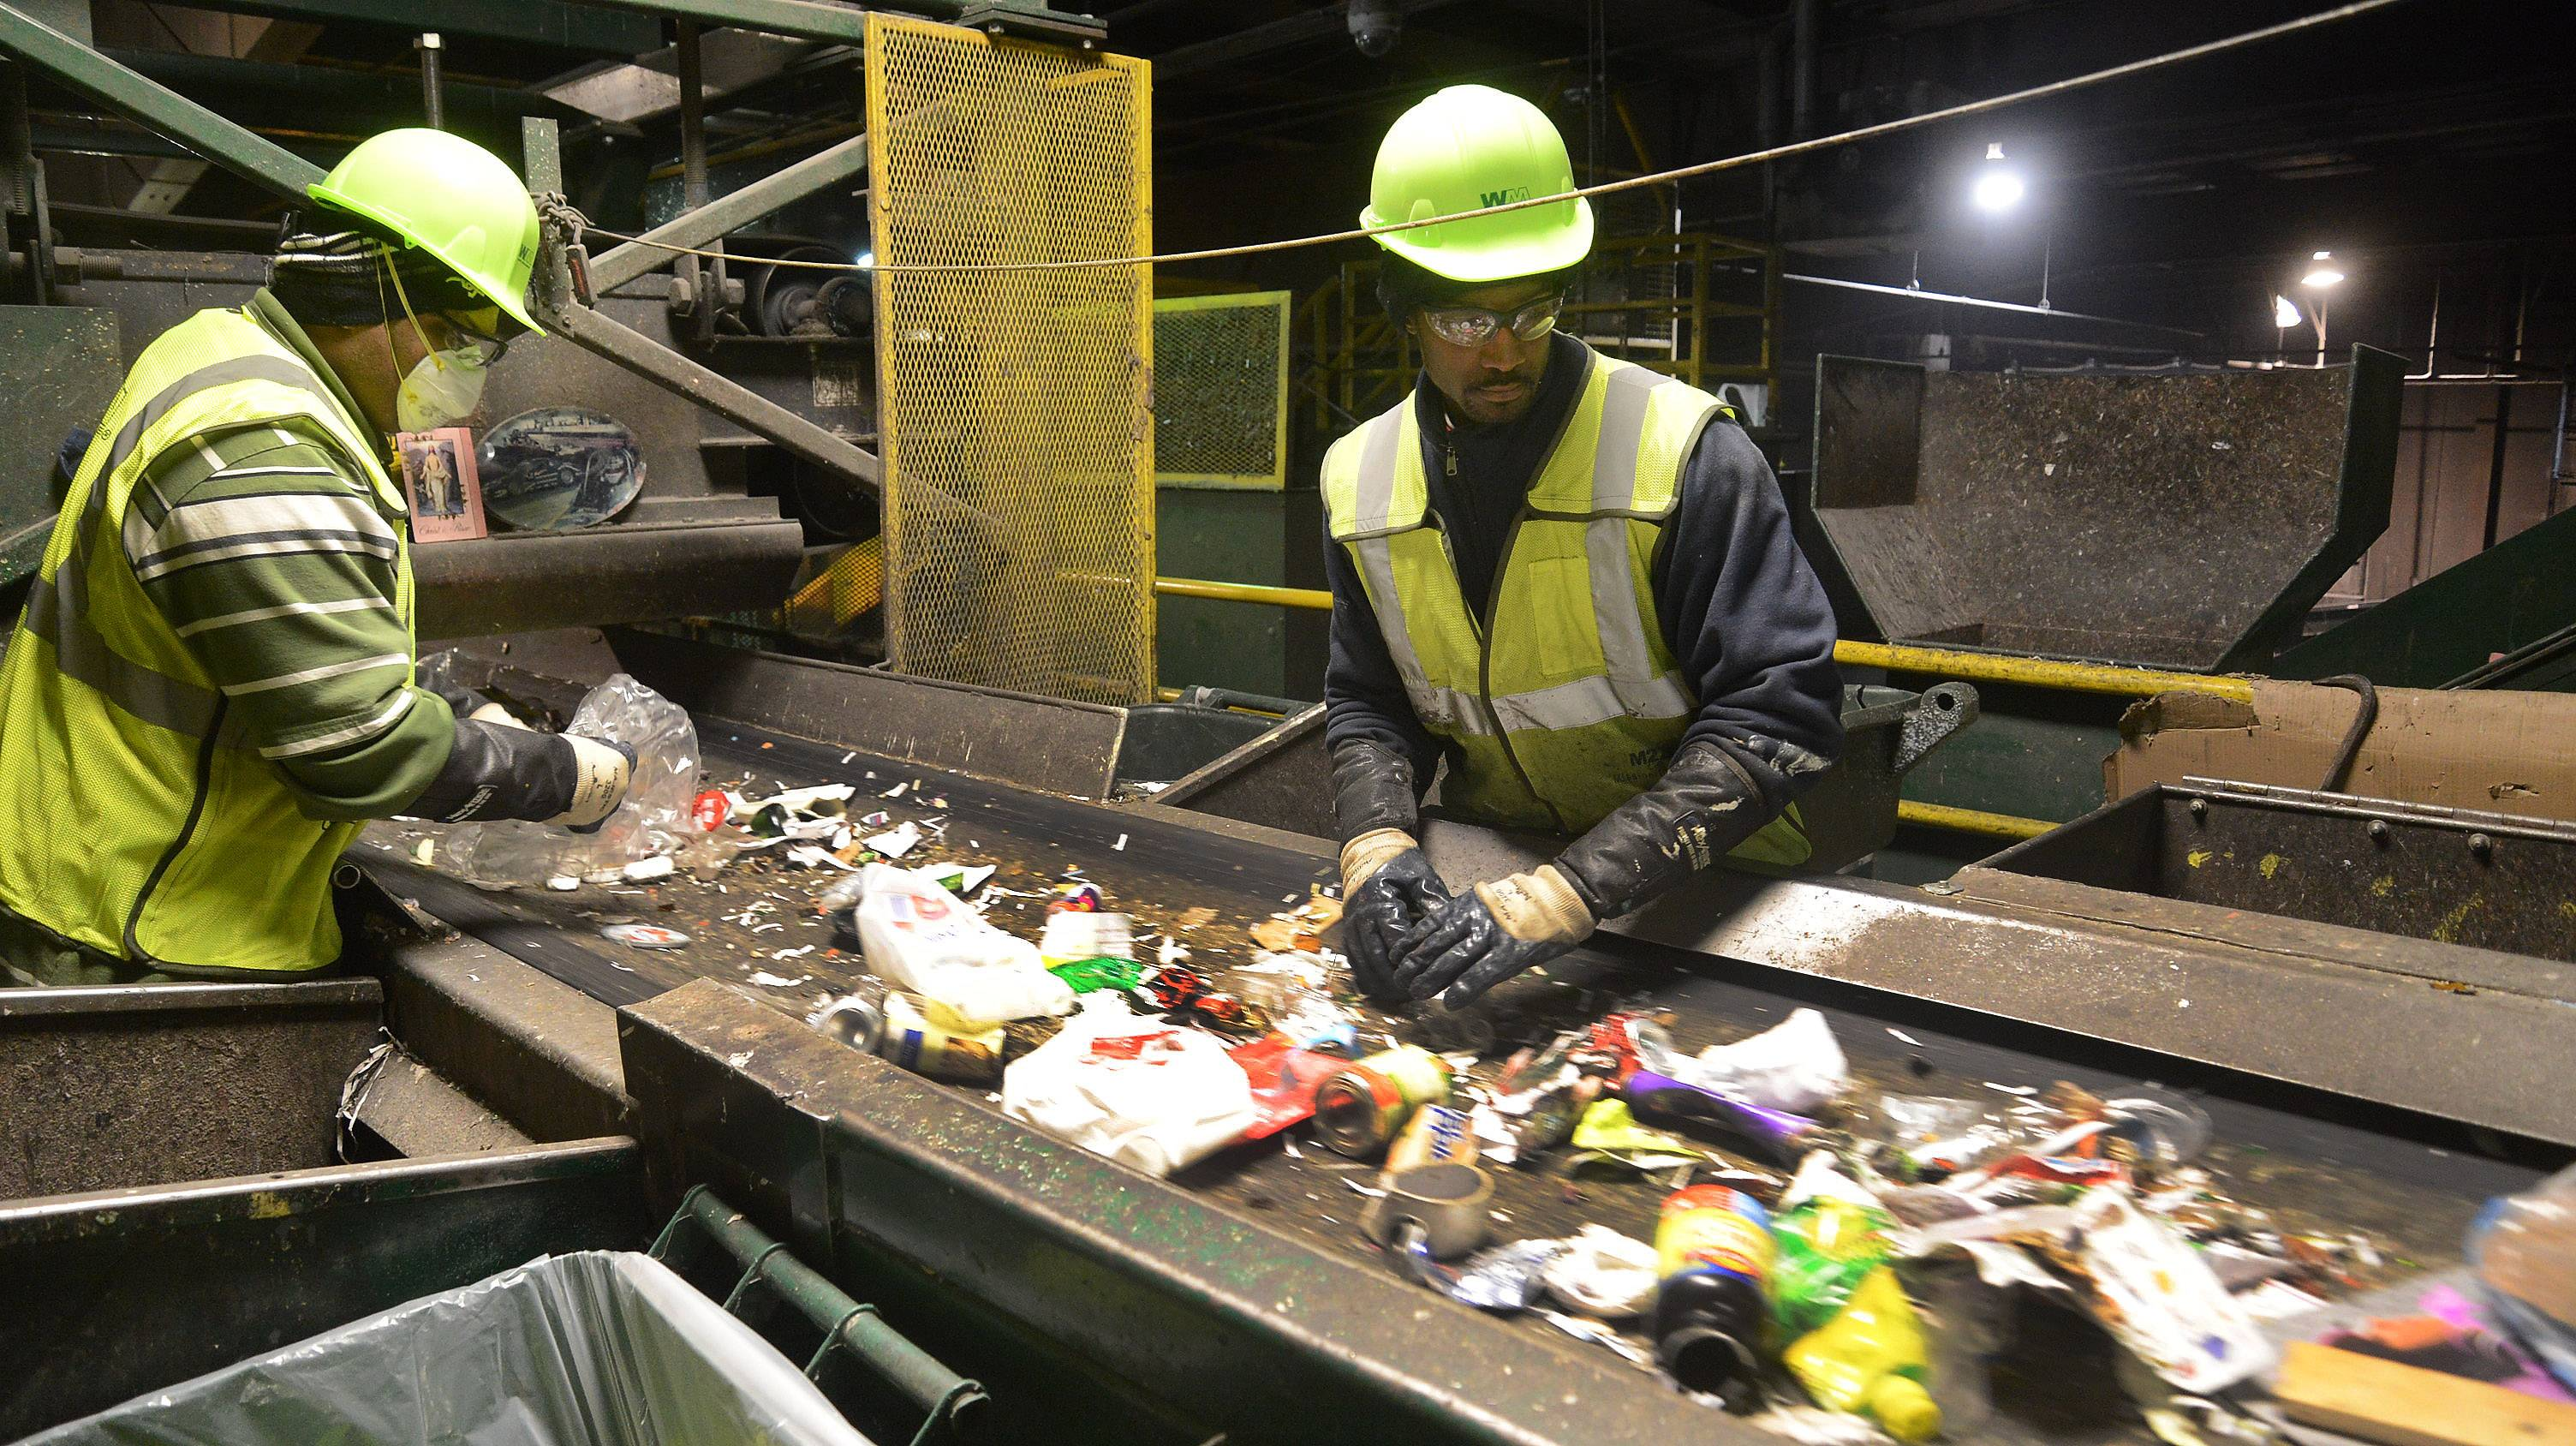 Sorters sift through the refuse, rejecting items that cannot be recycled, at the Waste Management recycling center in Grayslake.